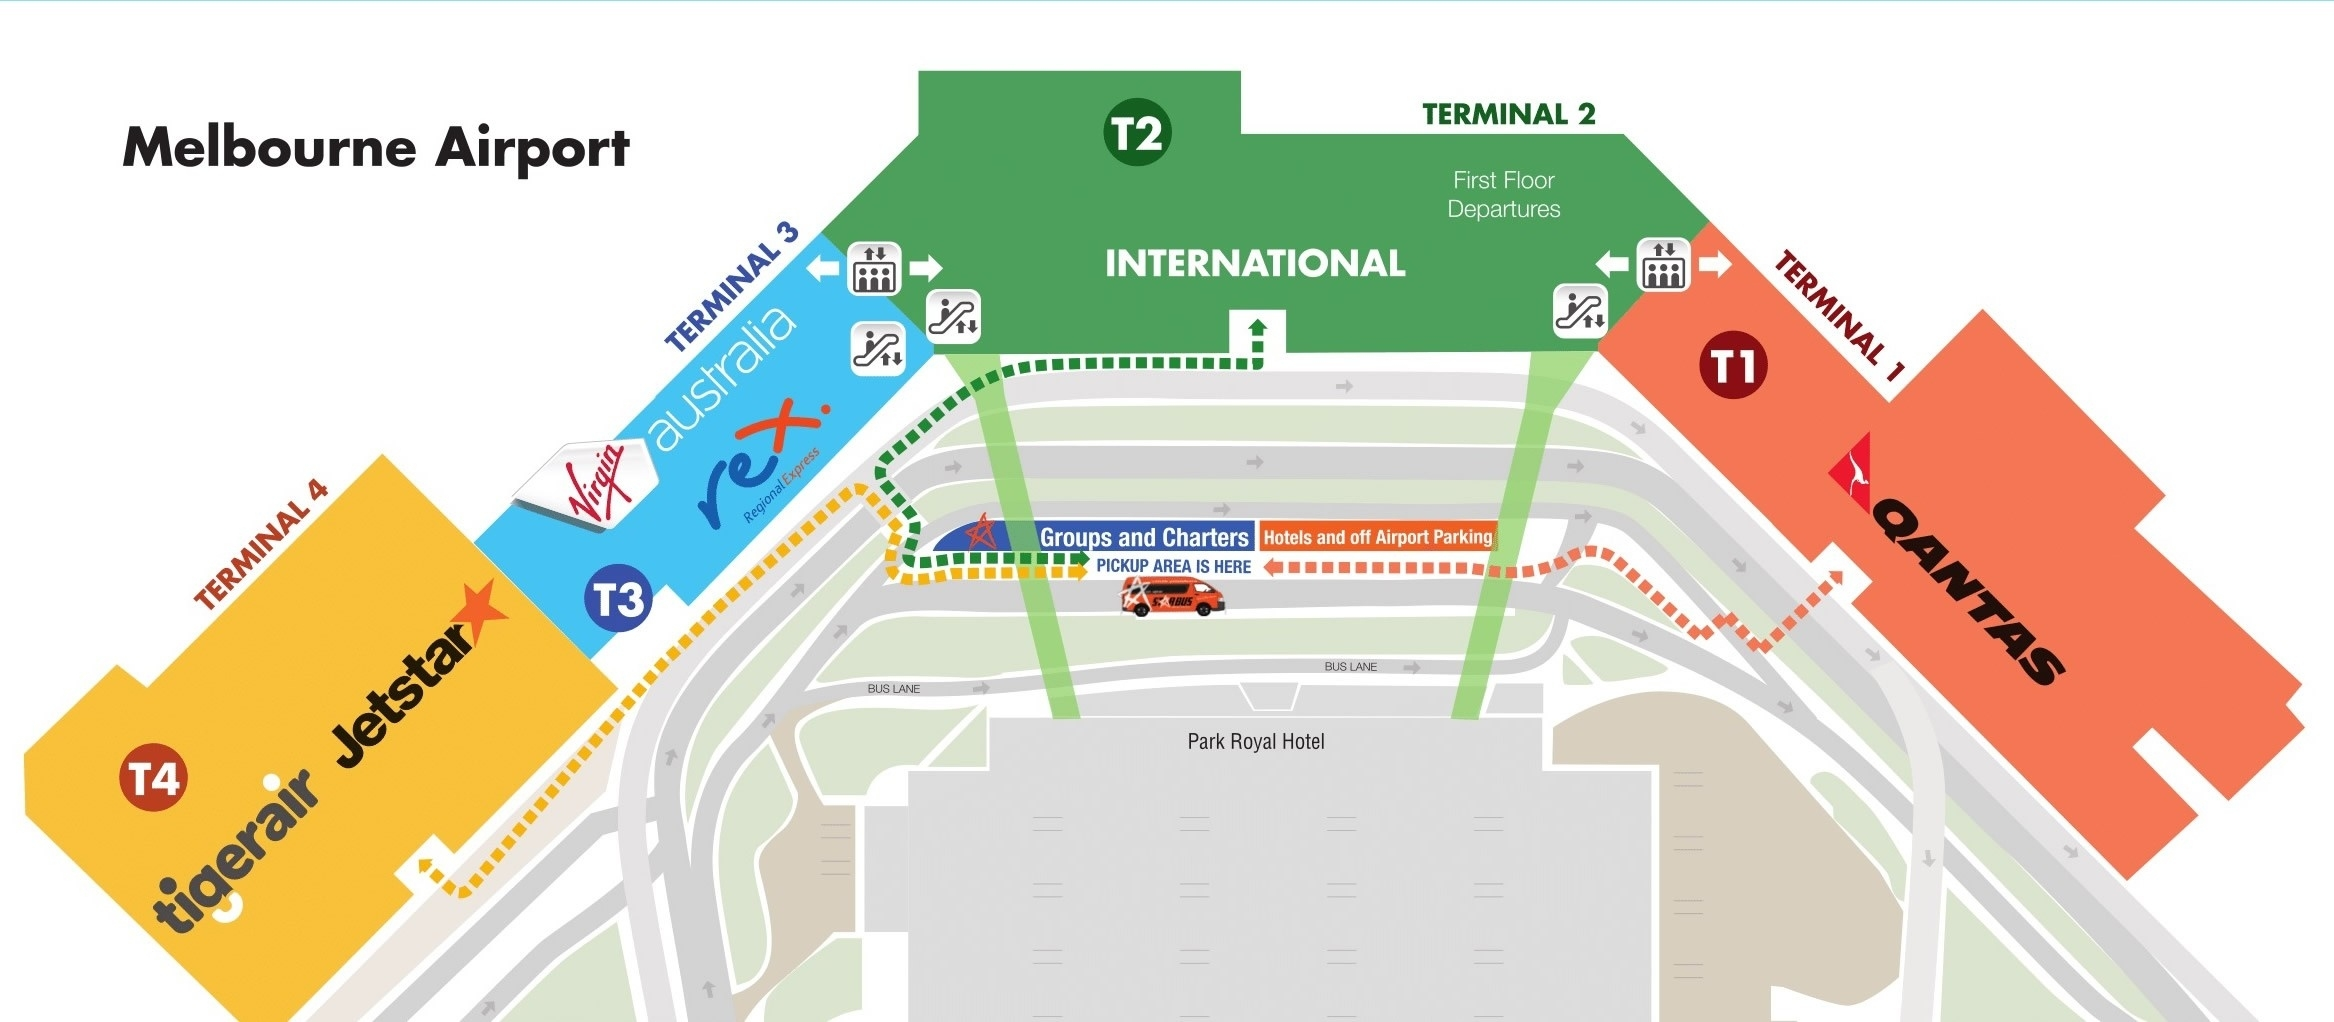 Melbourne Airport Shuttle   Starbus   Express Airport Shuttle regarding Melbourne Florida Airport Terminal Map